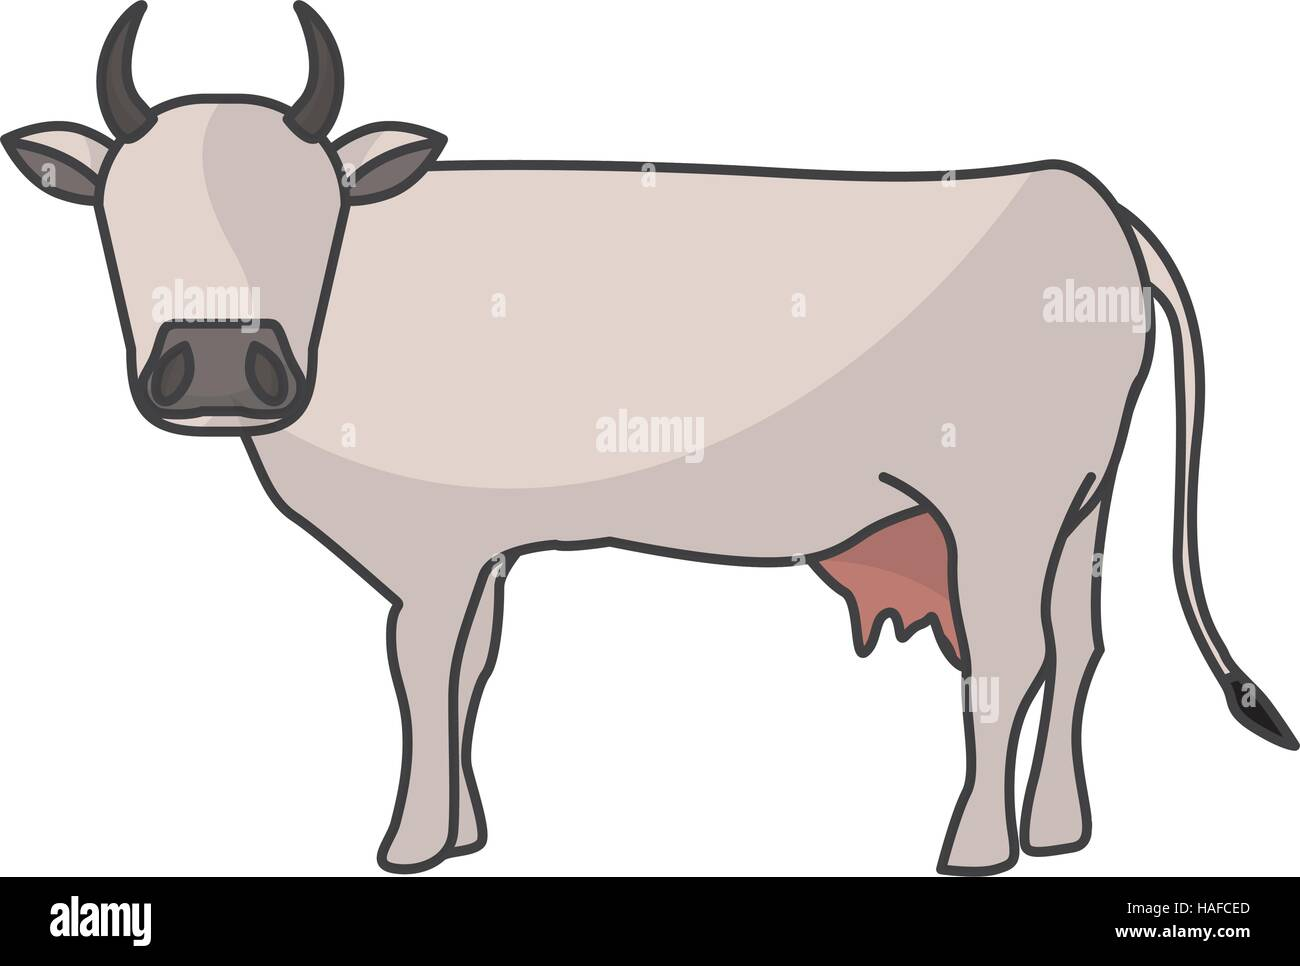 Line Drawing Cow Calf Stock Photos & Line Drawing Cow Calf